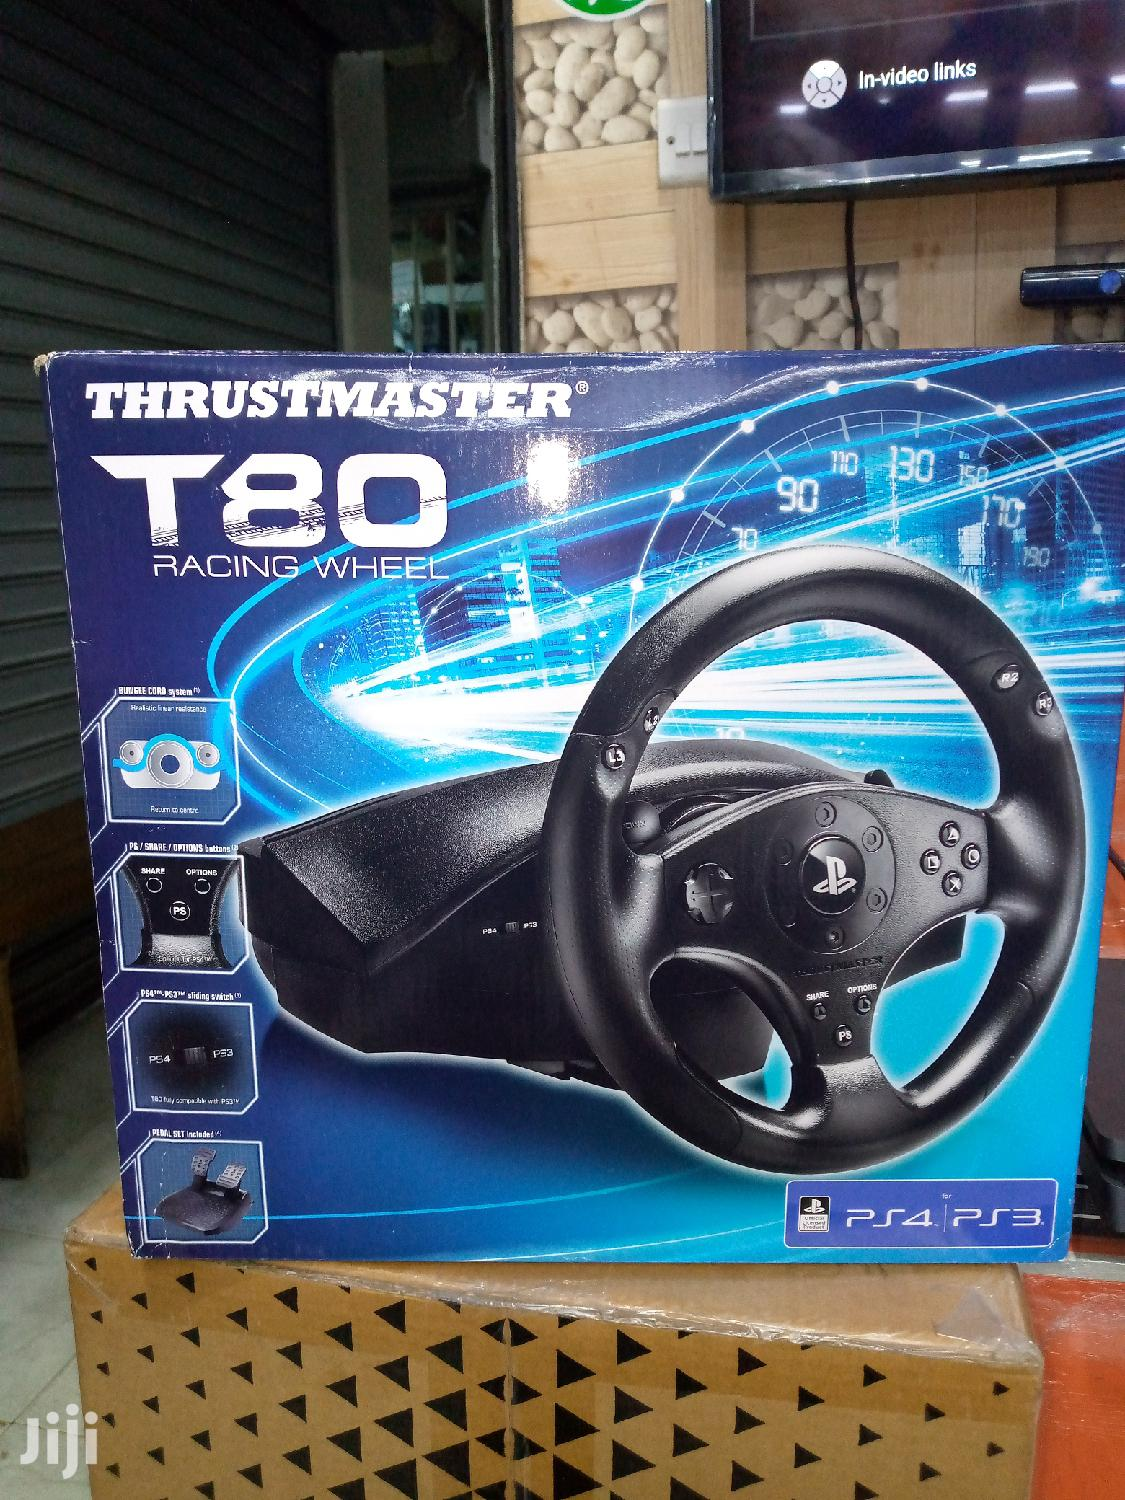 Thrustmaster T80 Racing Wheel | Computer Accessories  for sale in Nairobi Central, Nairobi, Kenya